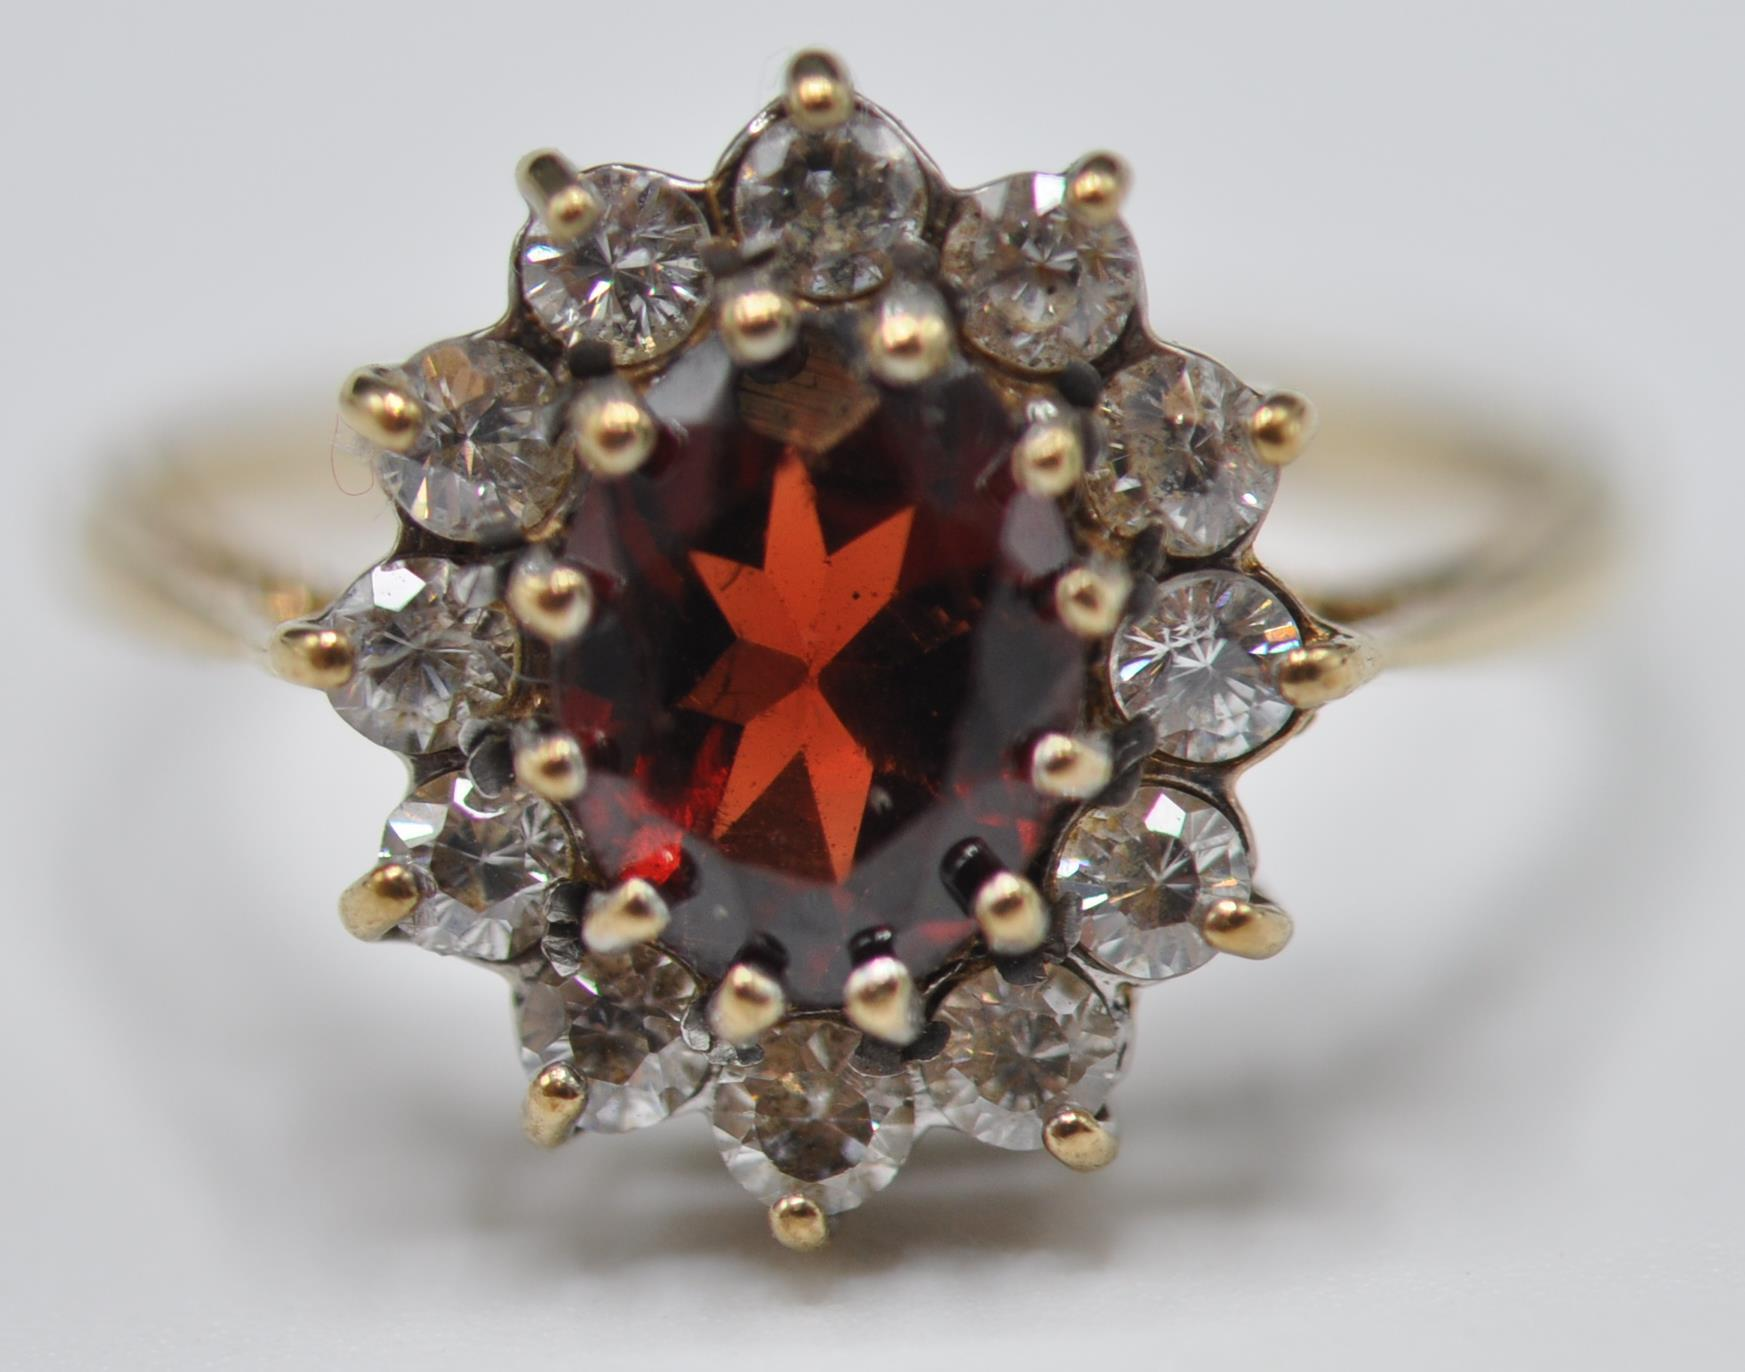 9CT GOLD RED AND WHITE STONE CLUSTER RING - Image 2 of 9